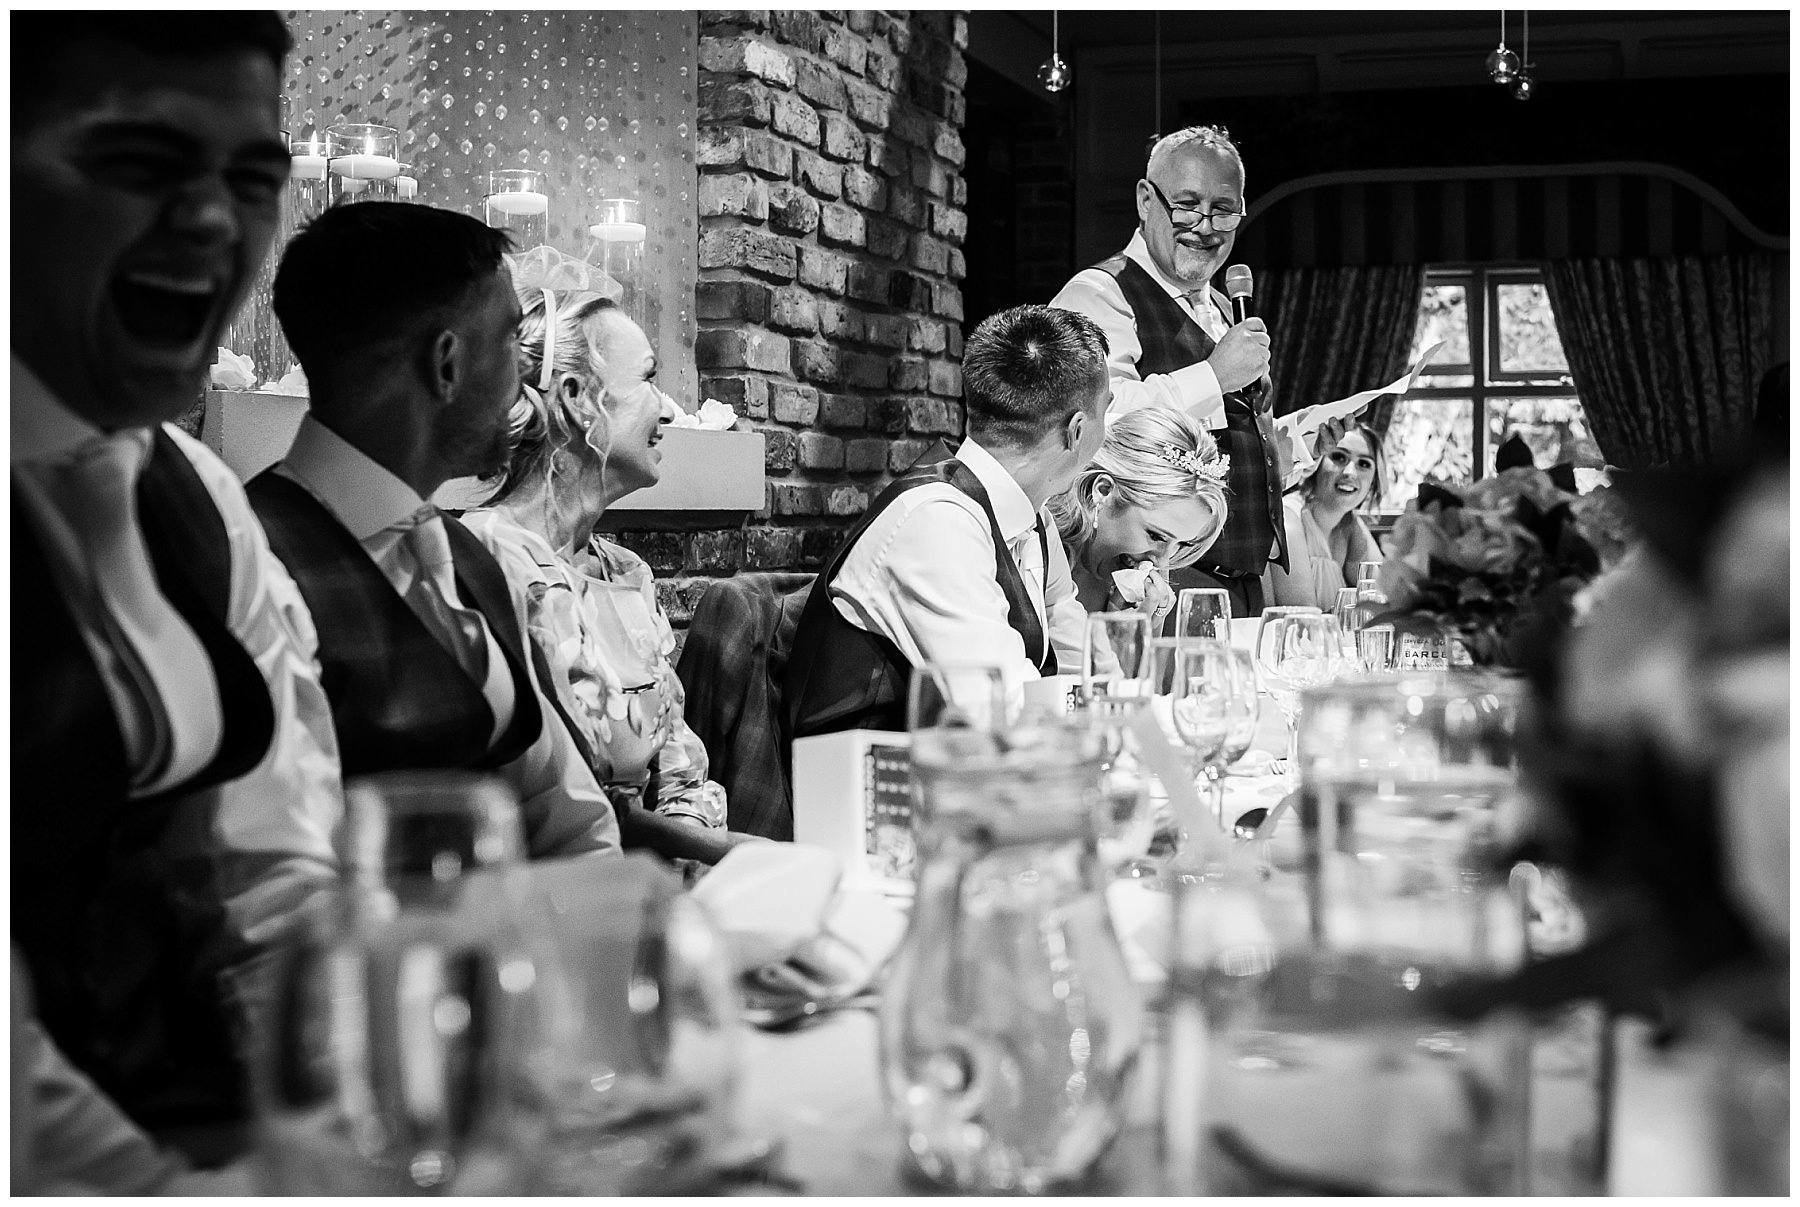 Father of the brides speech in black and white at Bartle Hall